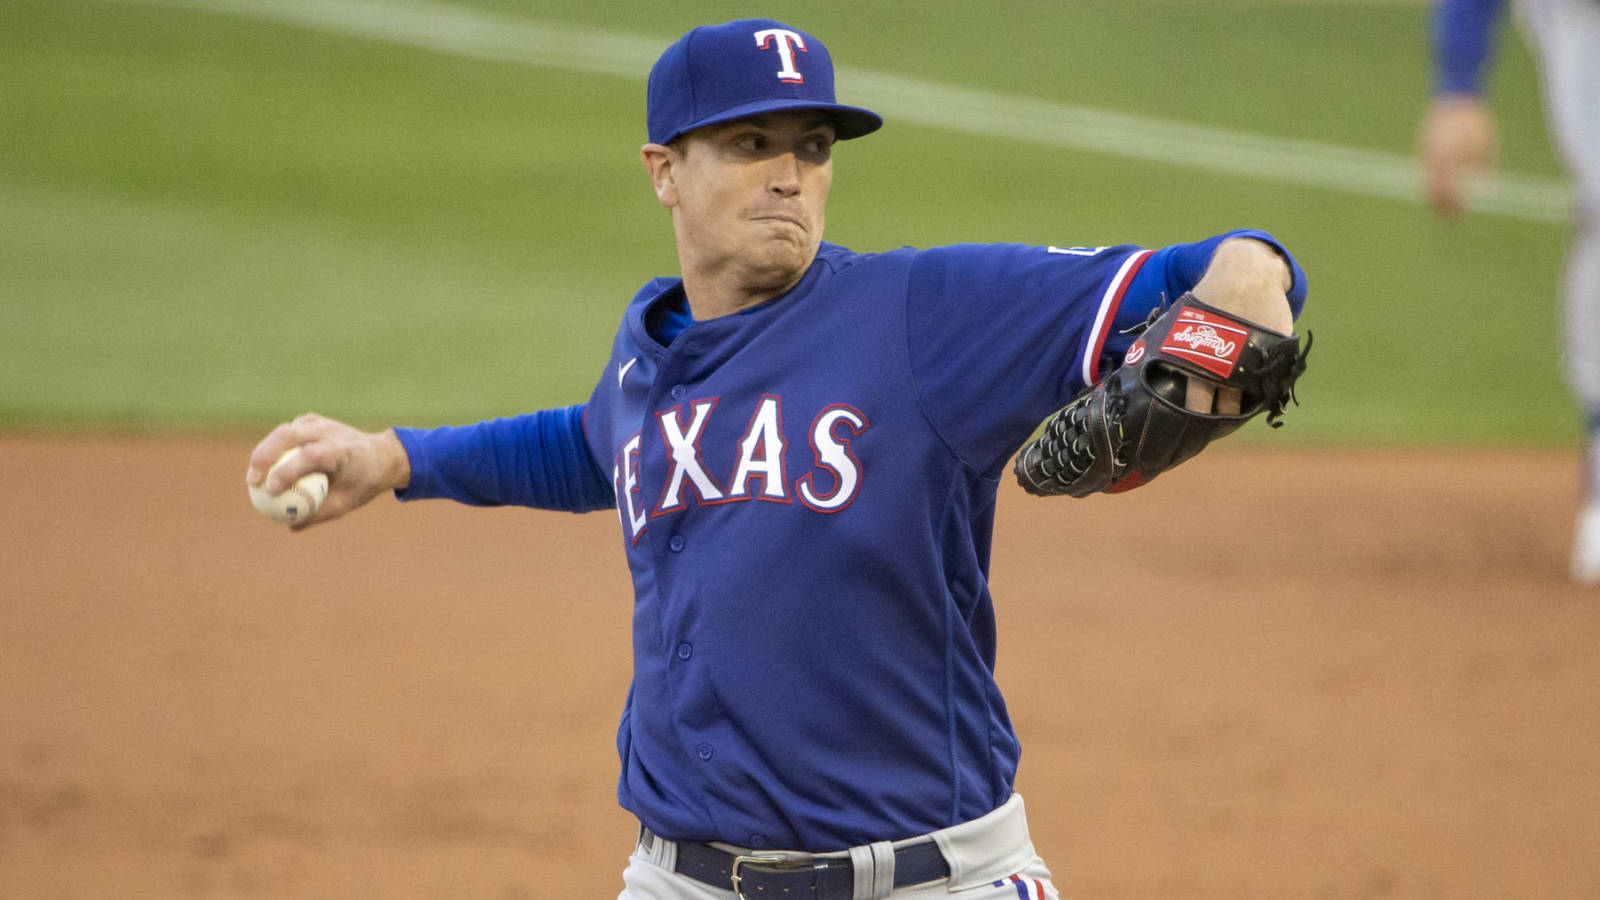 Rangers place RHP Kyle Gibson on IL with groin strain | Yardbarker